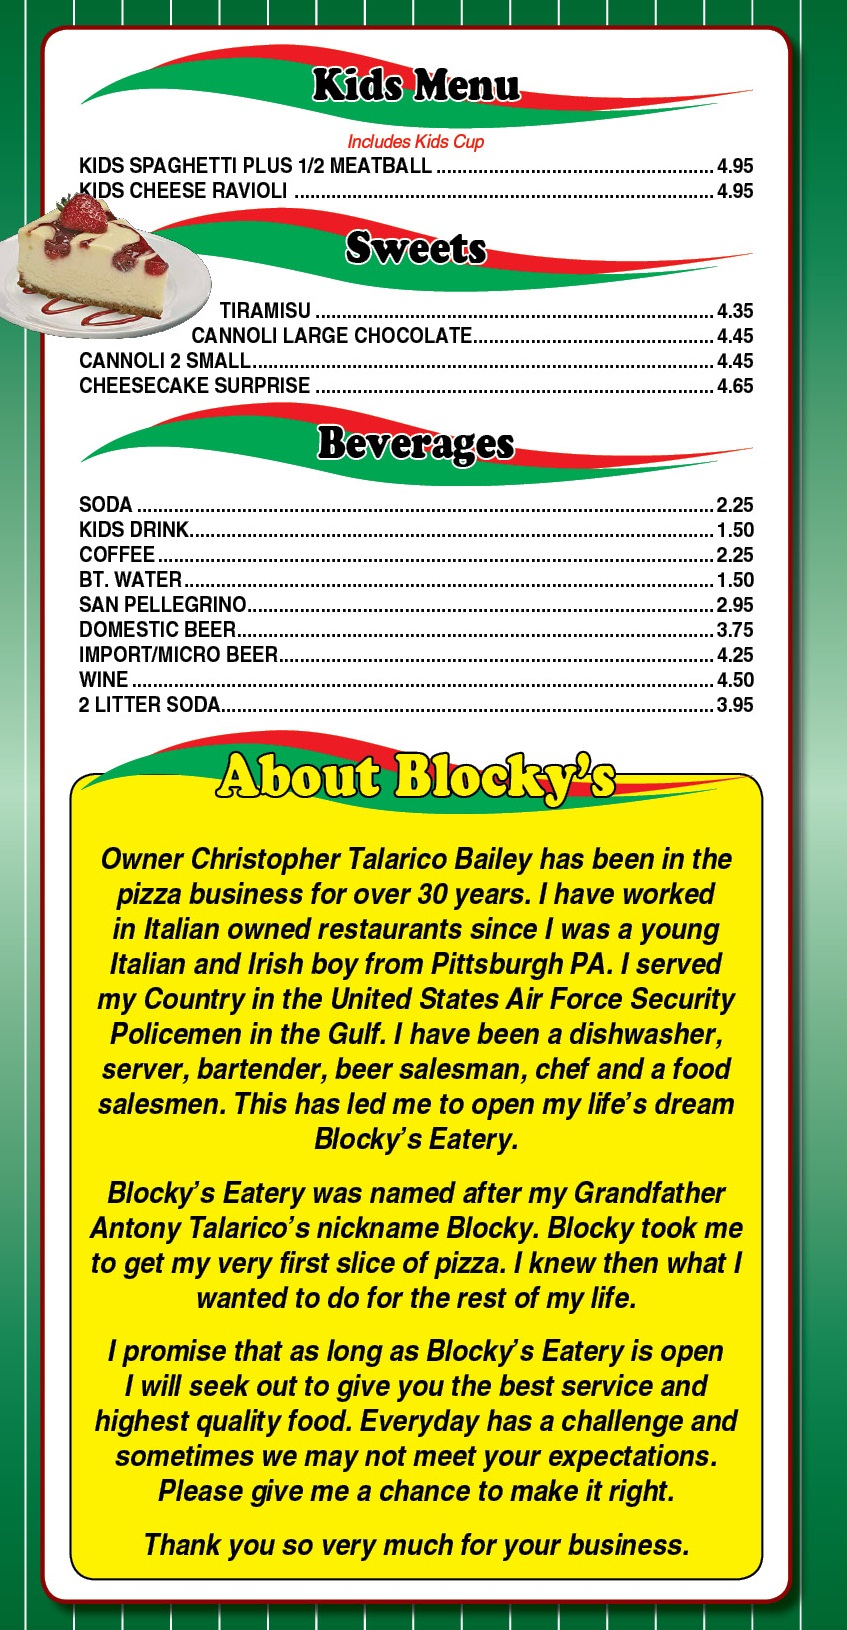 Blocky's Eatery menu4